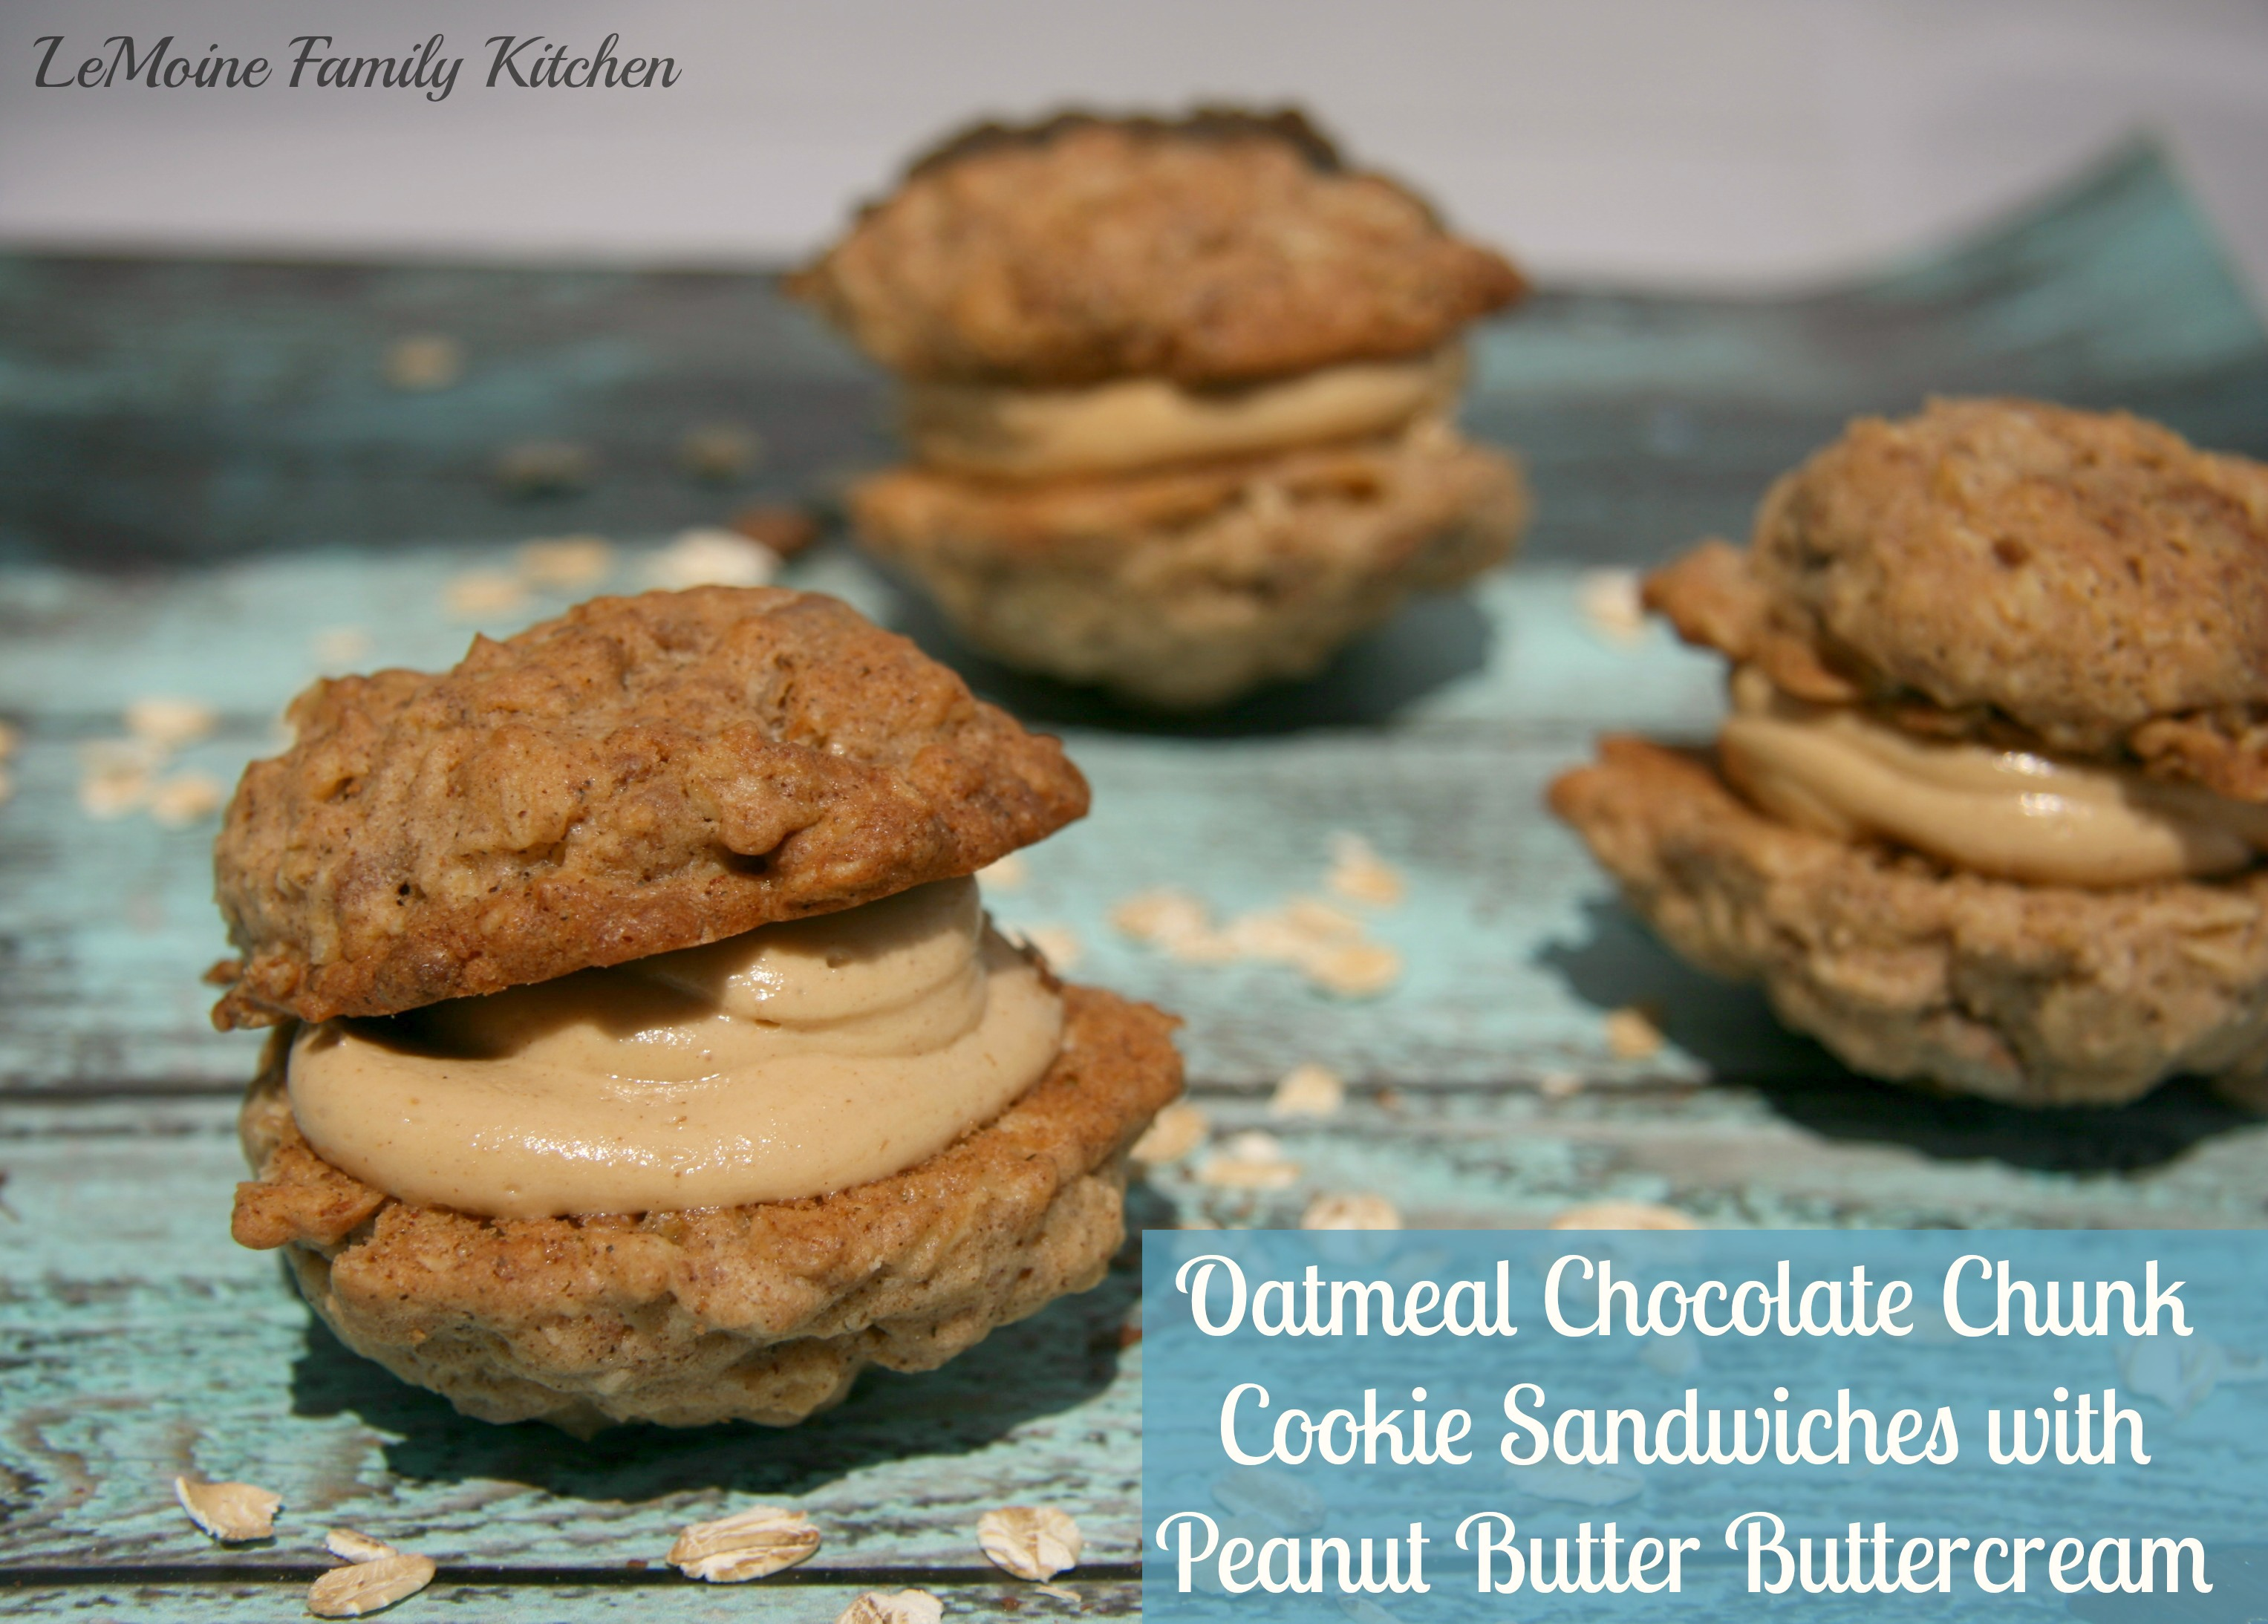 ... Chocolate Chunk Cookie Sandwiches with Peanut Butter Buttercream